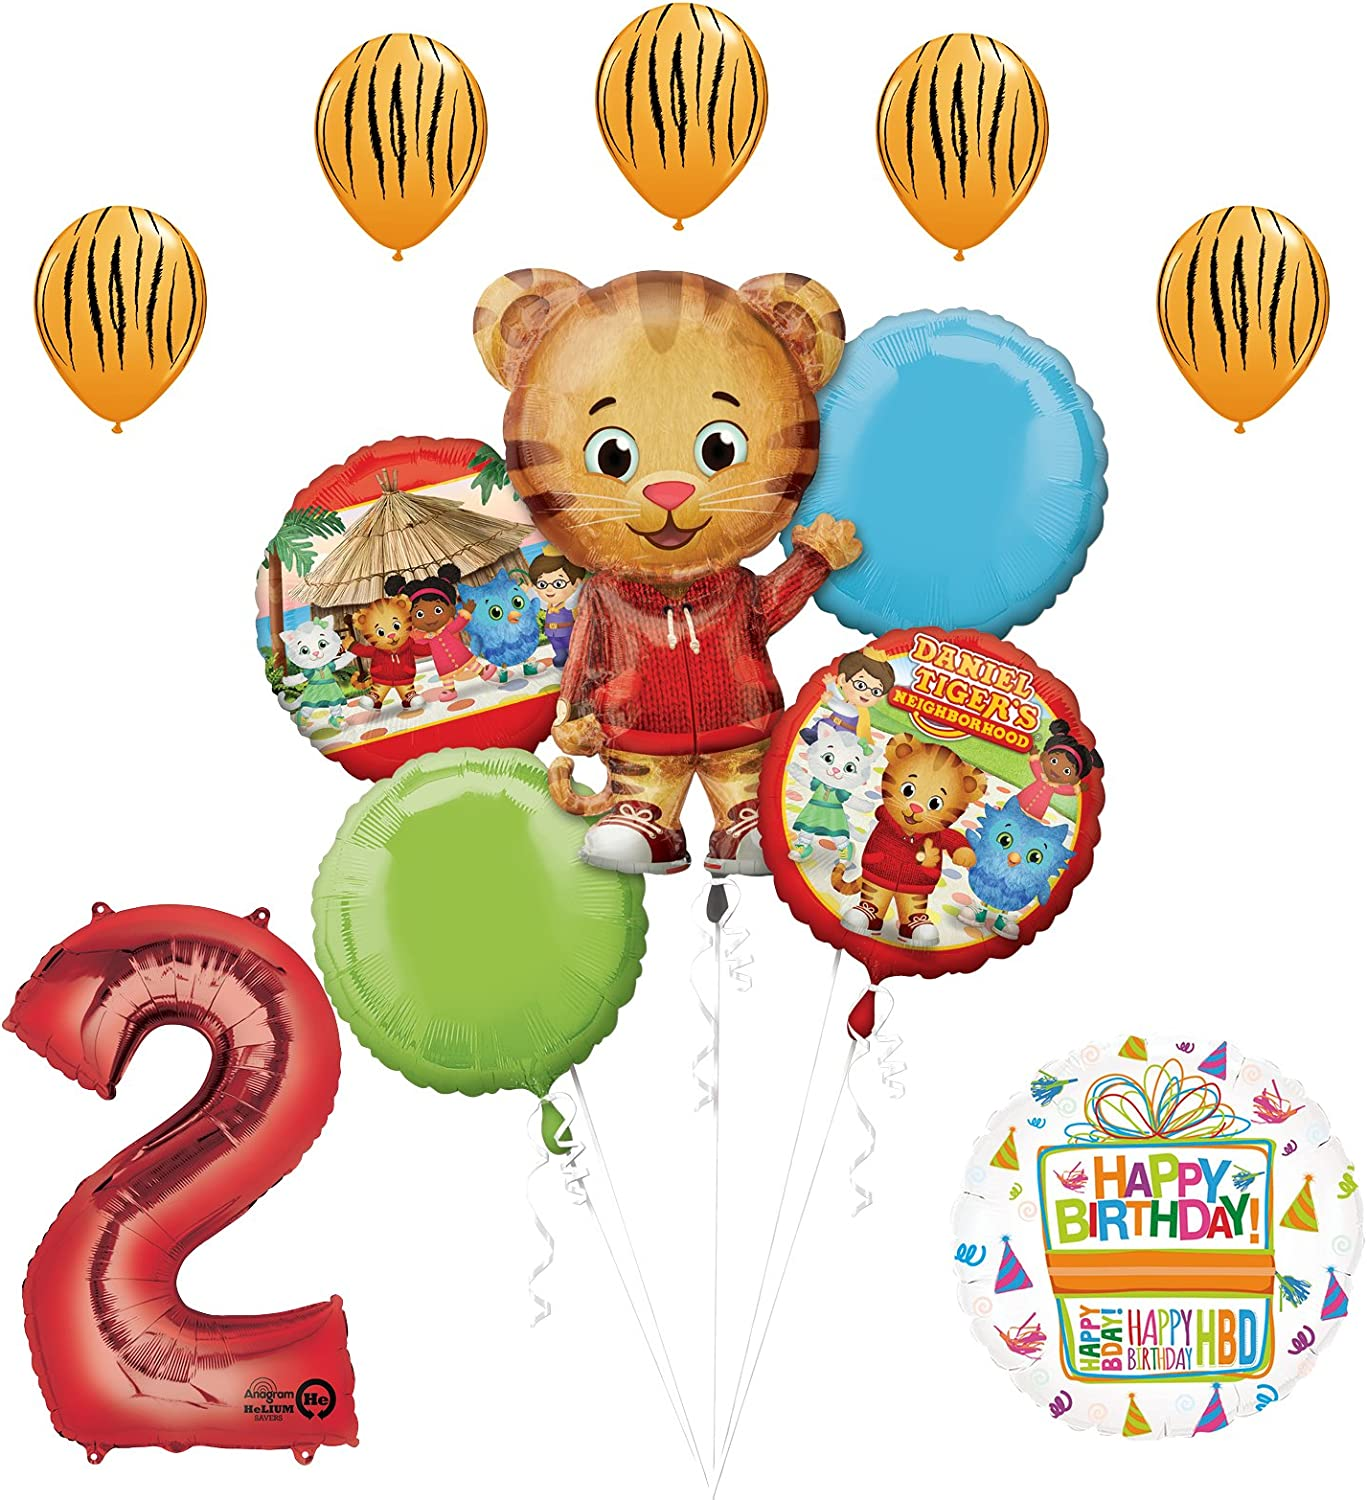 The Ultimate Daniel Tiger Neighborhood 5th Birthday Party Supplies and Balloon Decorations